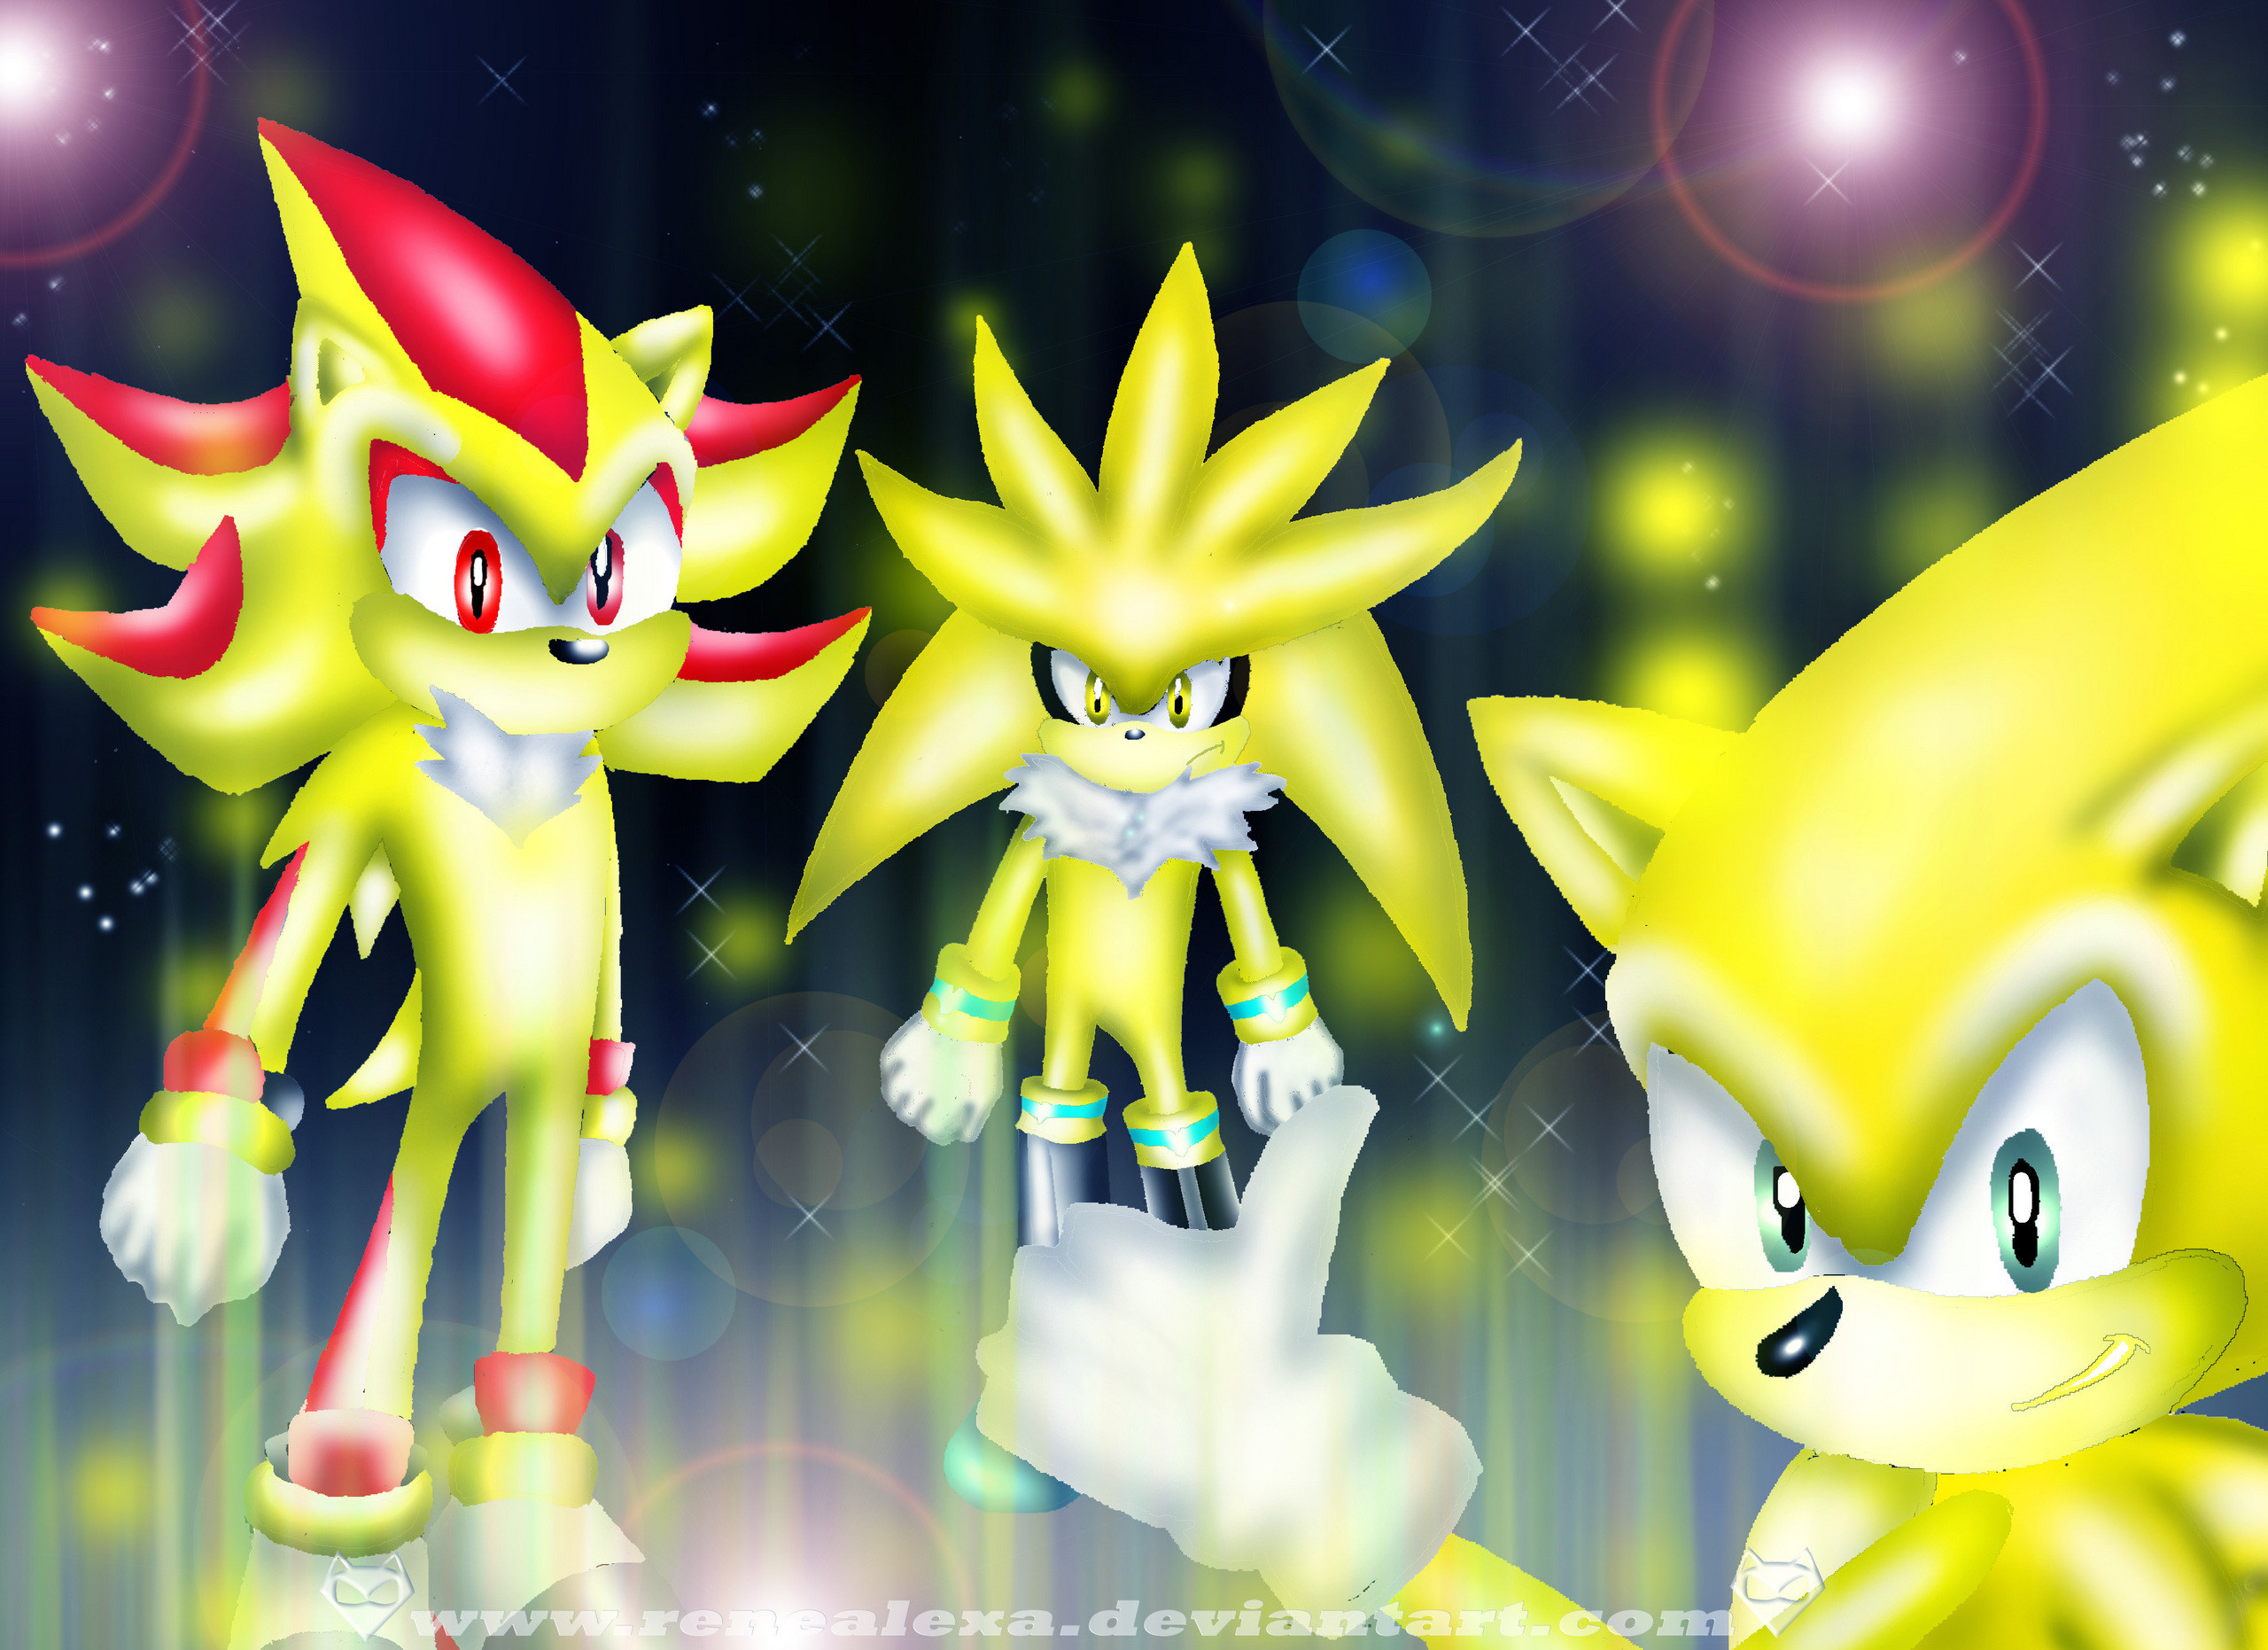 2560x1862 Sonic the Hedgehog images The three Super Hedgehog's HD wallpaper and  background photos